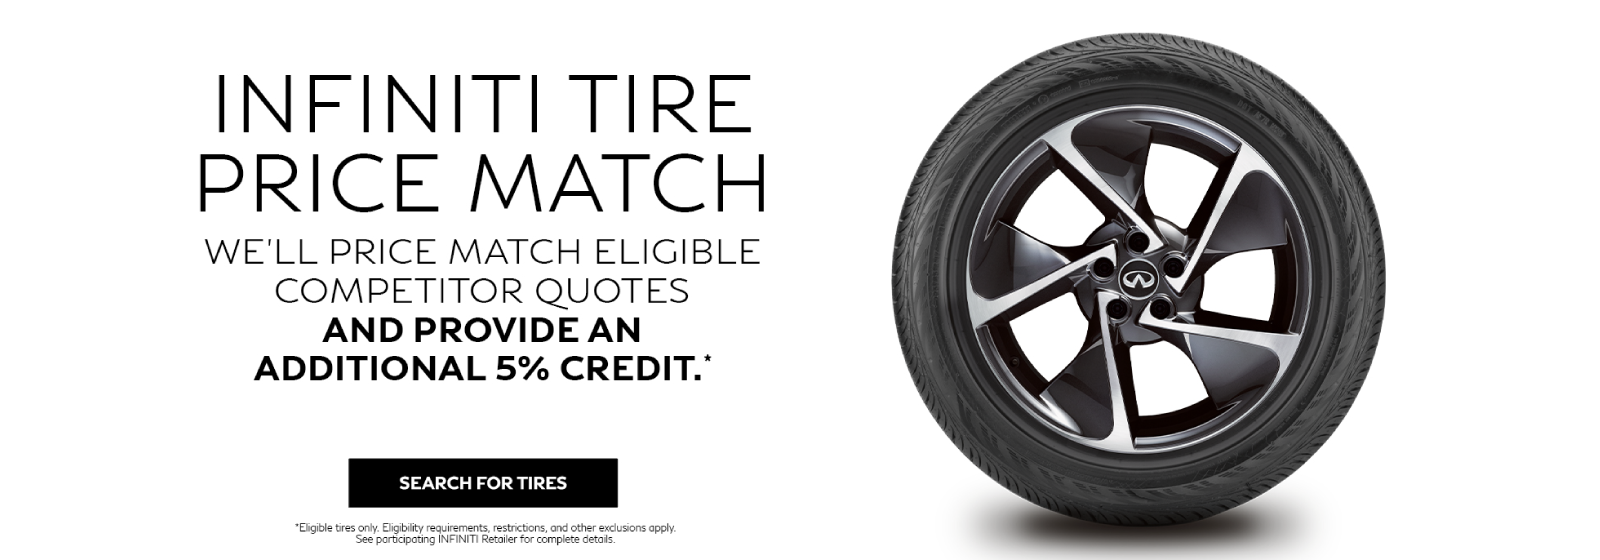 Tire Price Match. See retailer for complete details. Search for Tires.